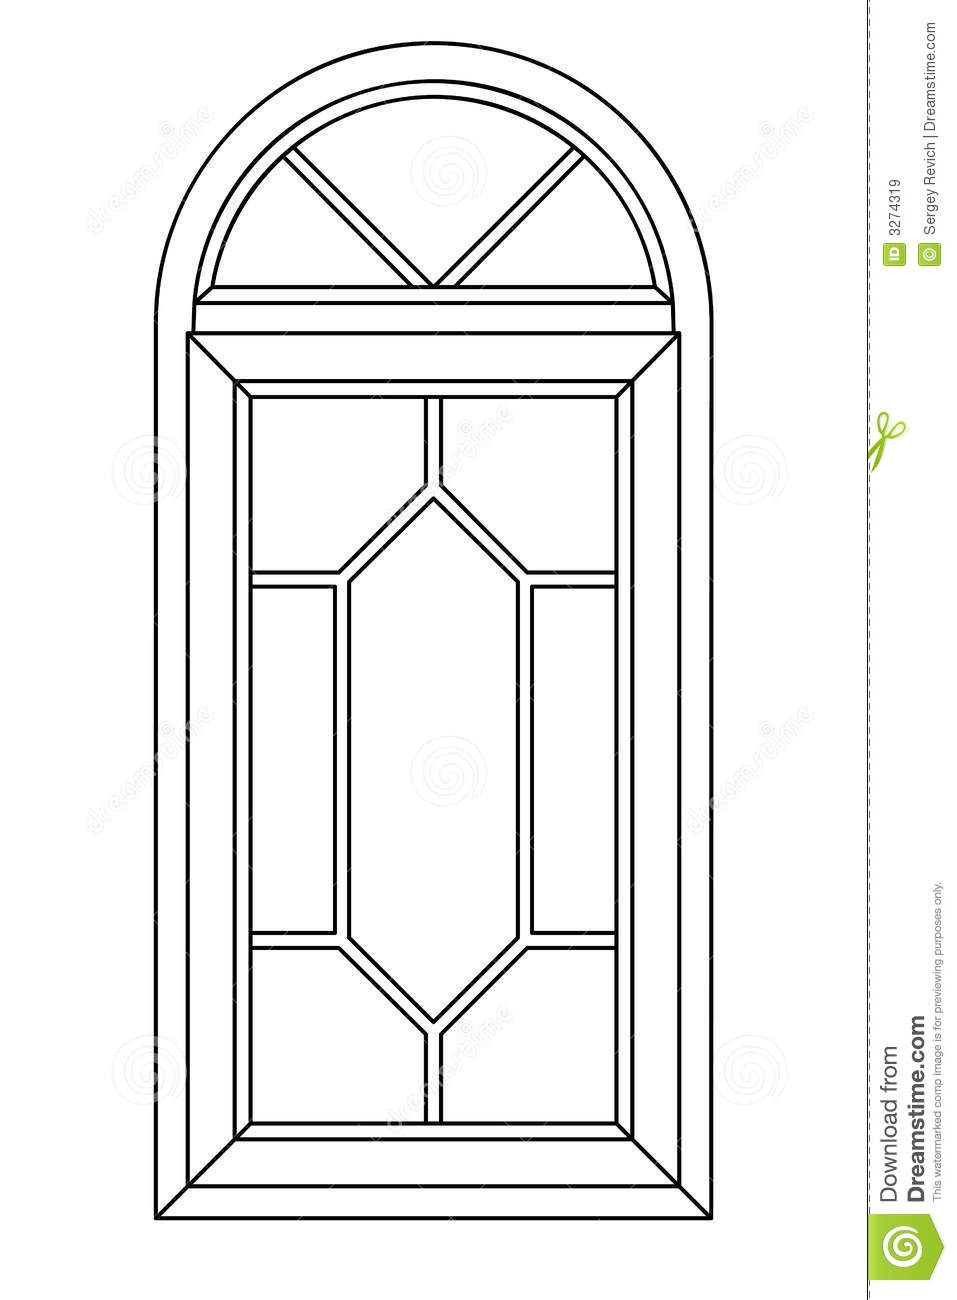 Planimetric Arch Window 3 Royalty Free Stock Images